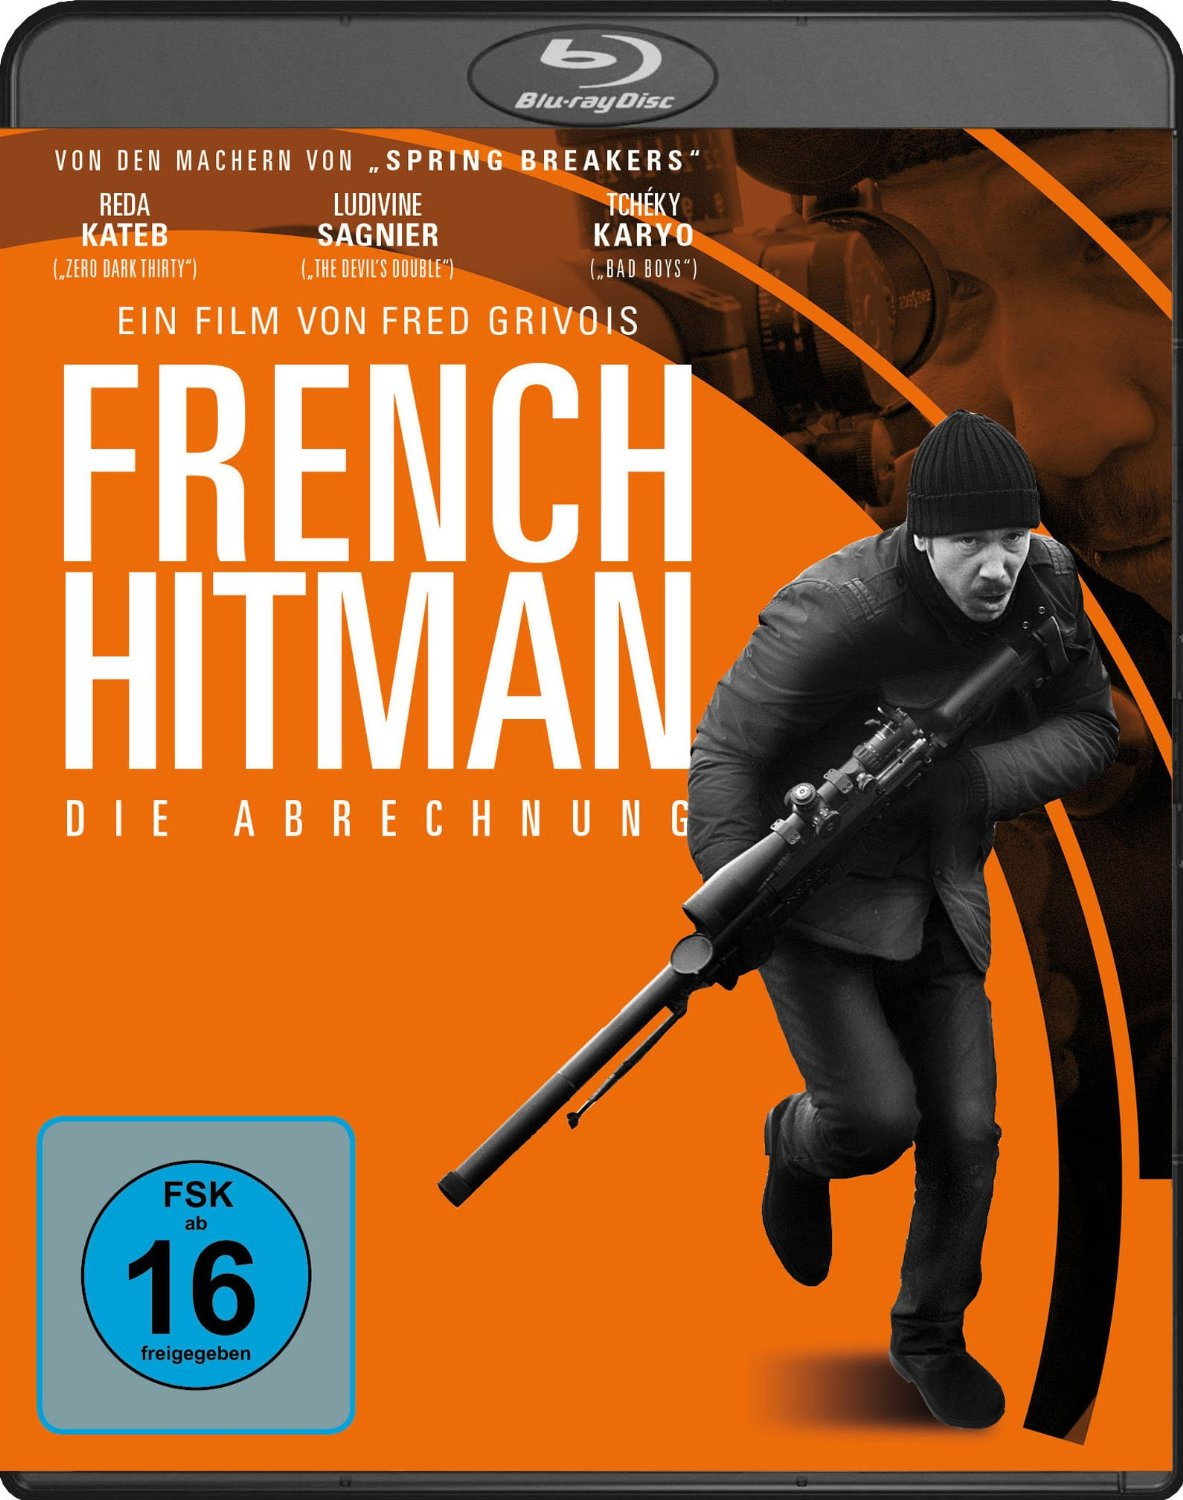 french hitman die abrechnung blu ray review kritik. Black Bedroom Furniture Sets. Home Design Ideas